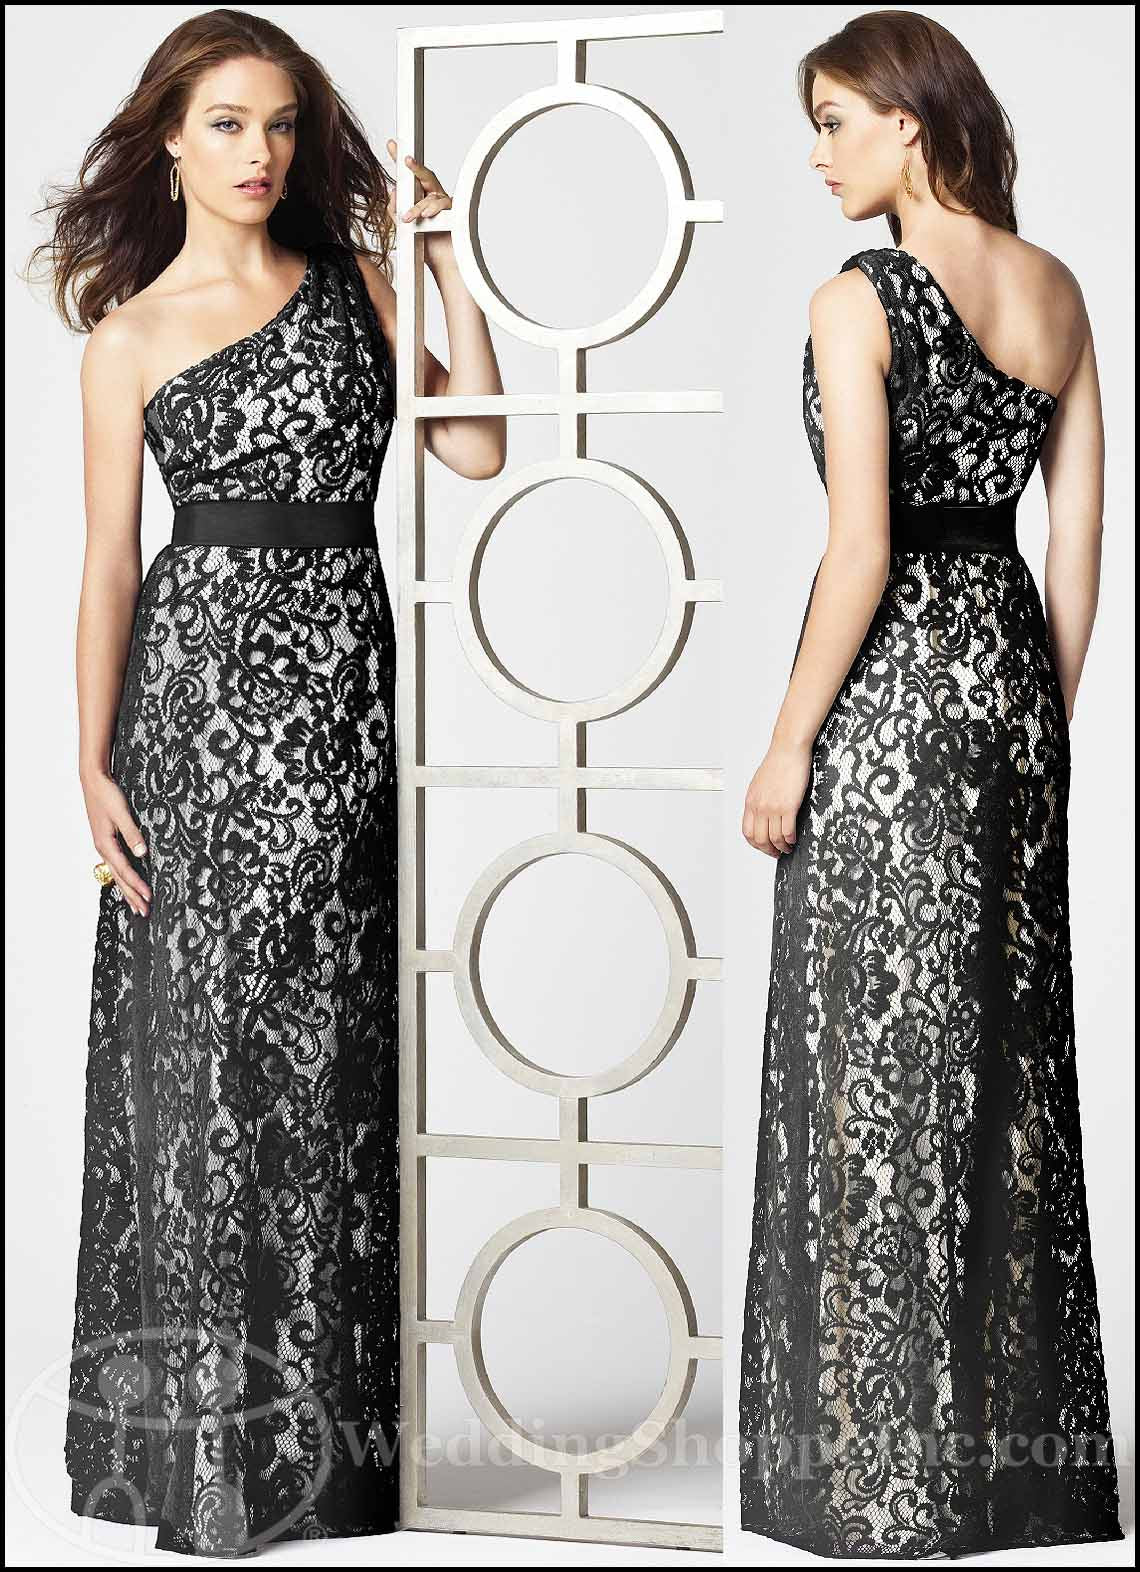 White and Black Lace Bridesmaid Dresses: Dessy 2850